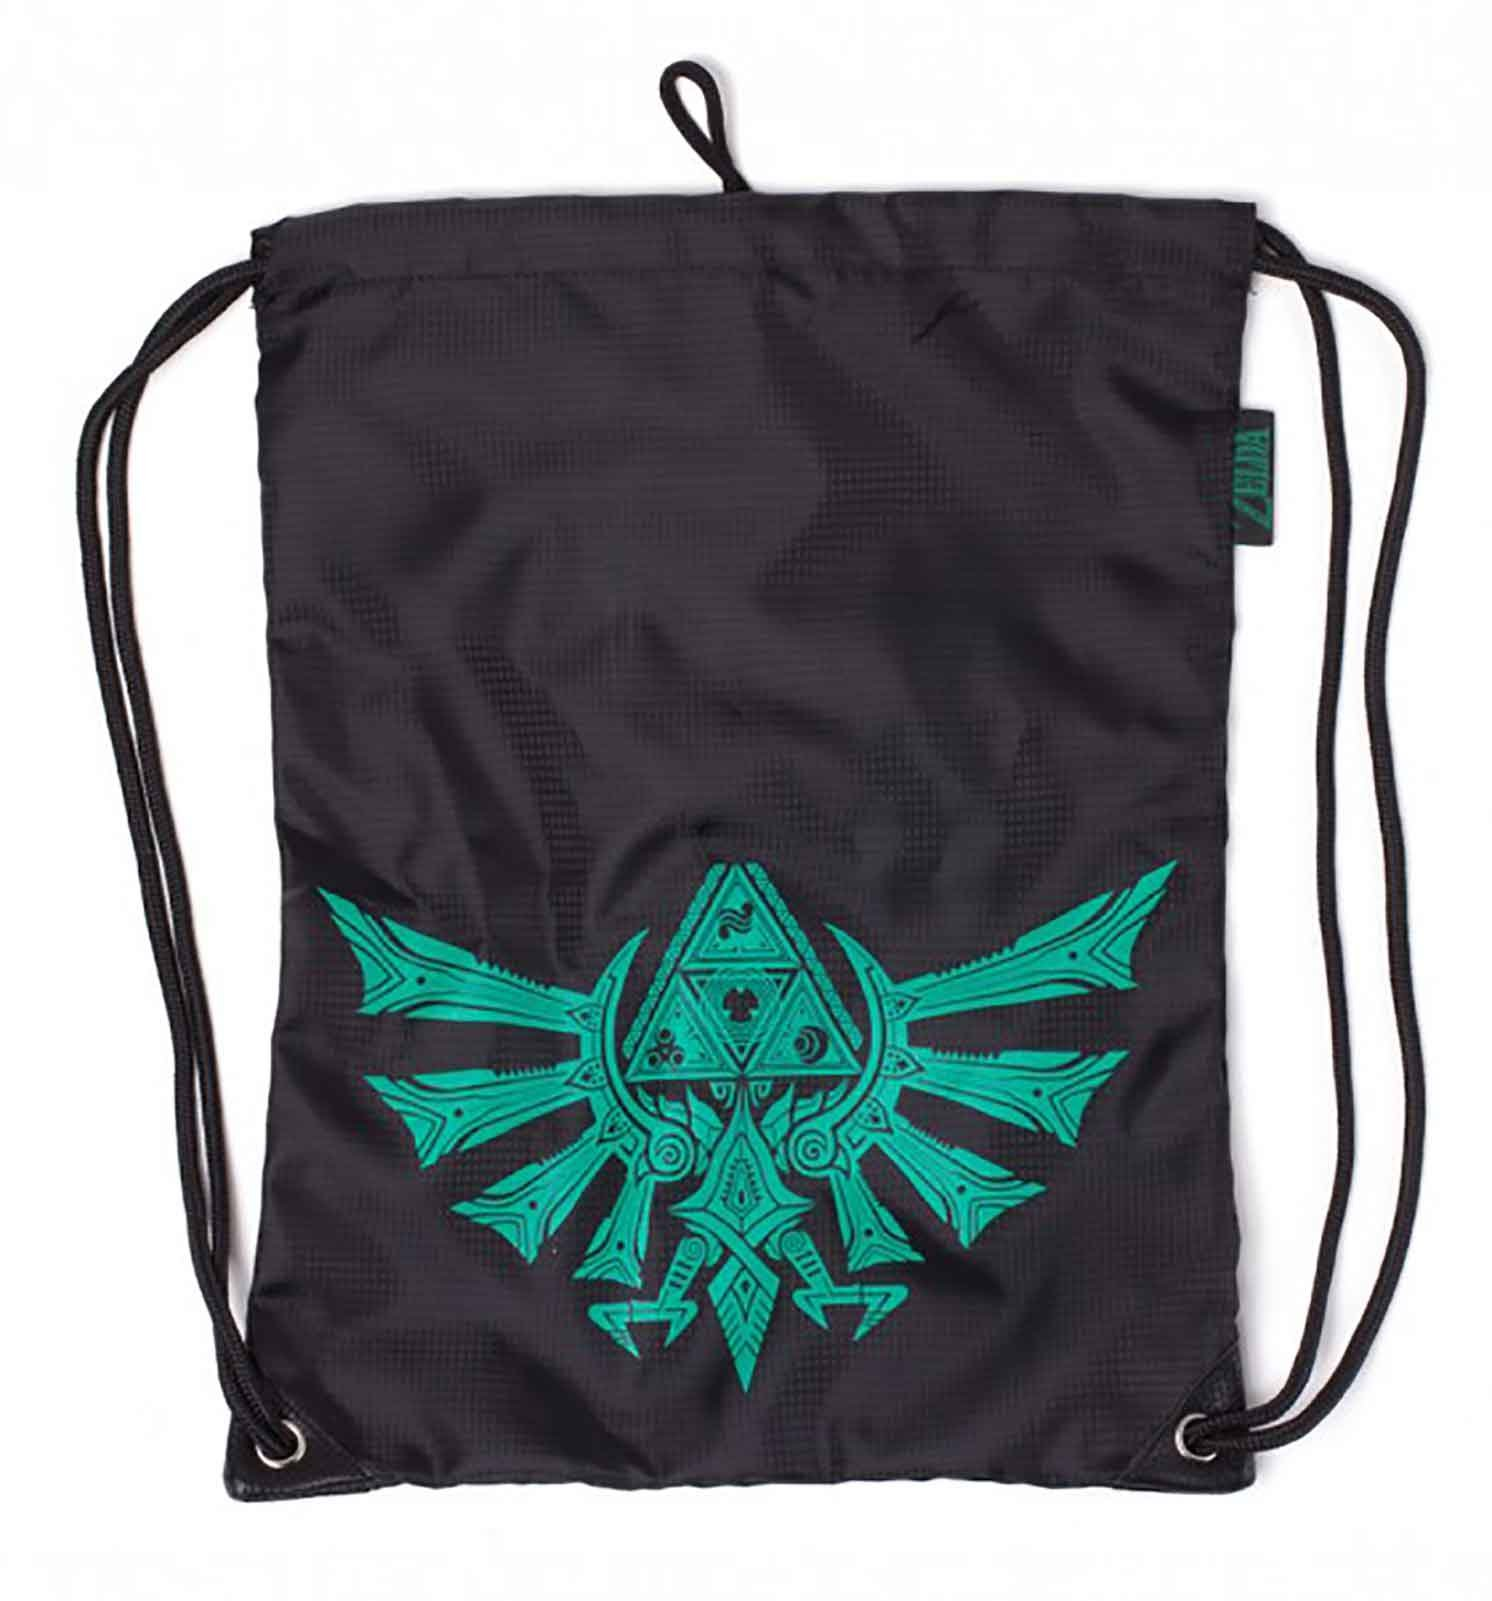 Zelda Gym Bag Zelda Hyrule Crest Rubber Printed Official Nintendo Black